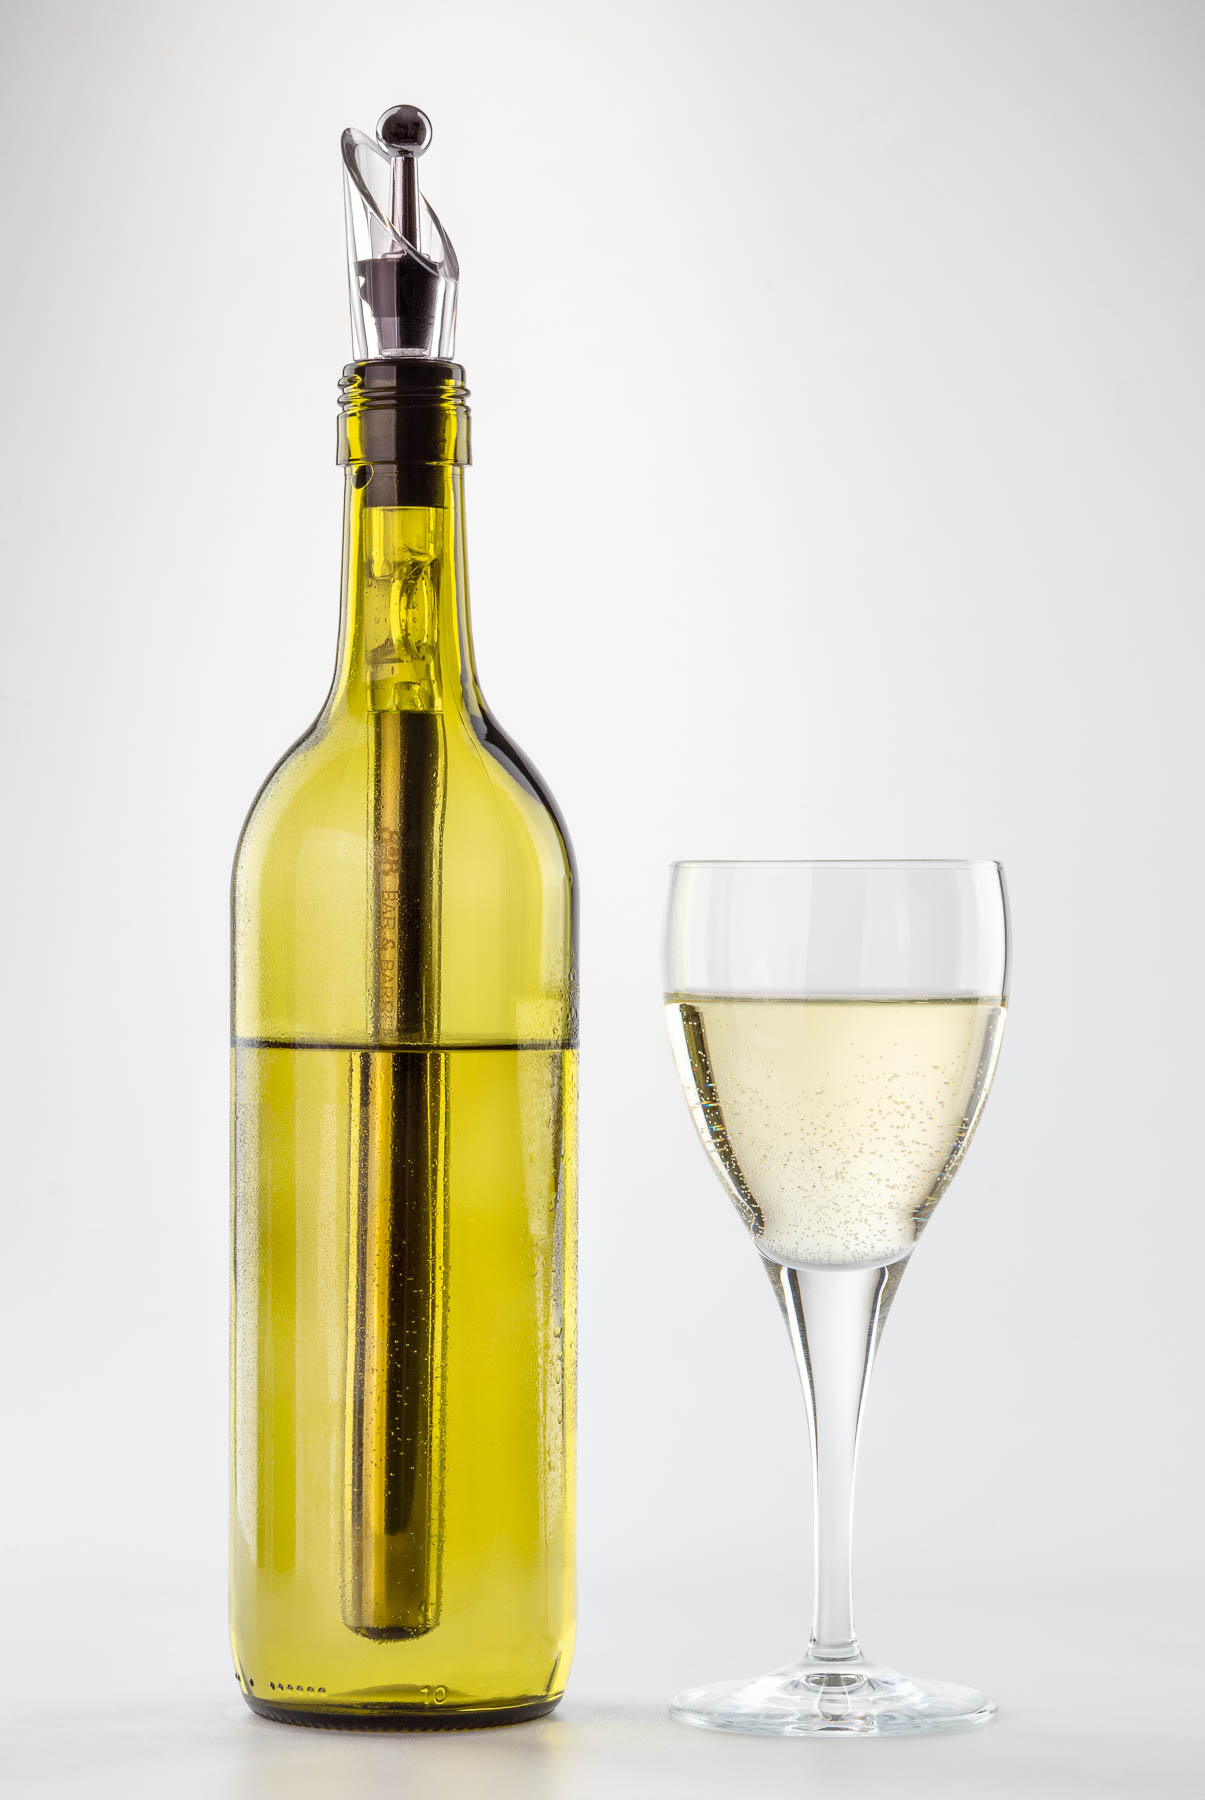 Bar and Barrel Wine stopper Full botle and glass of white wine